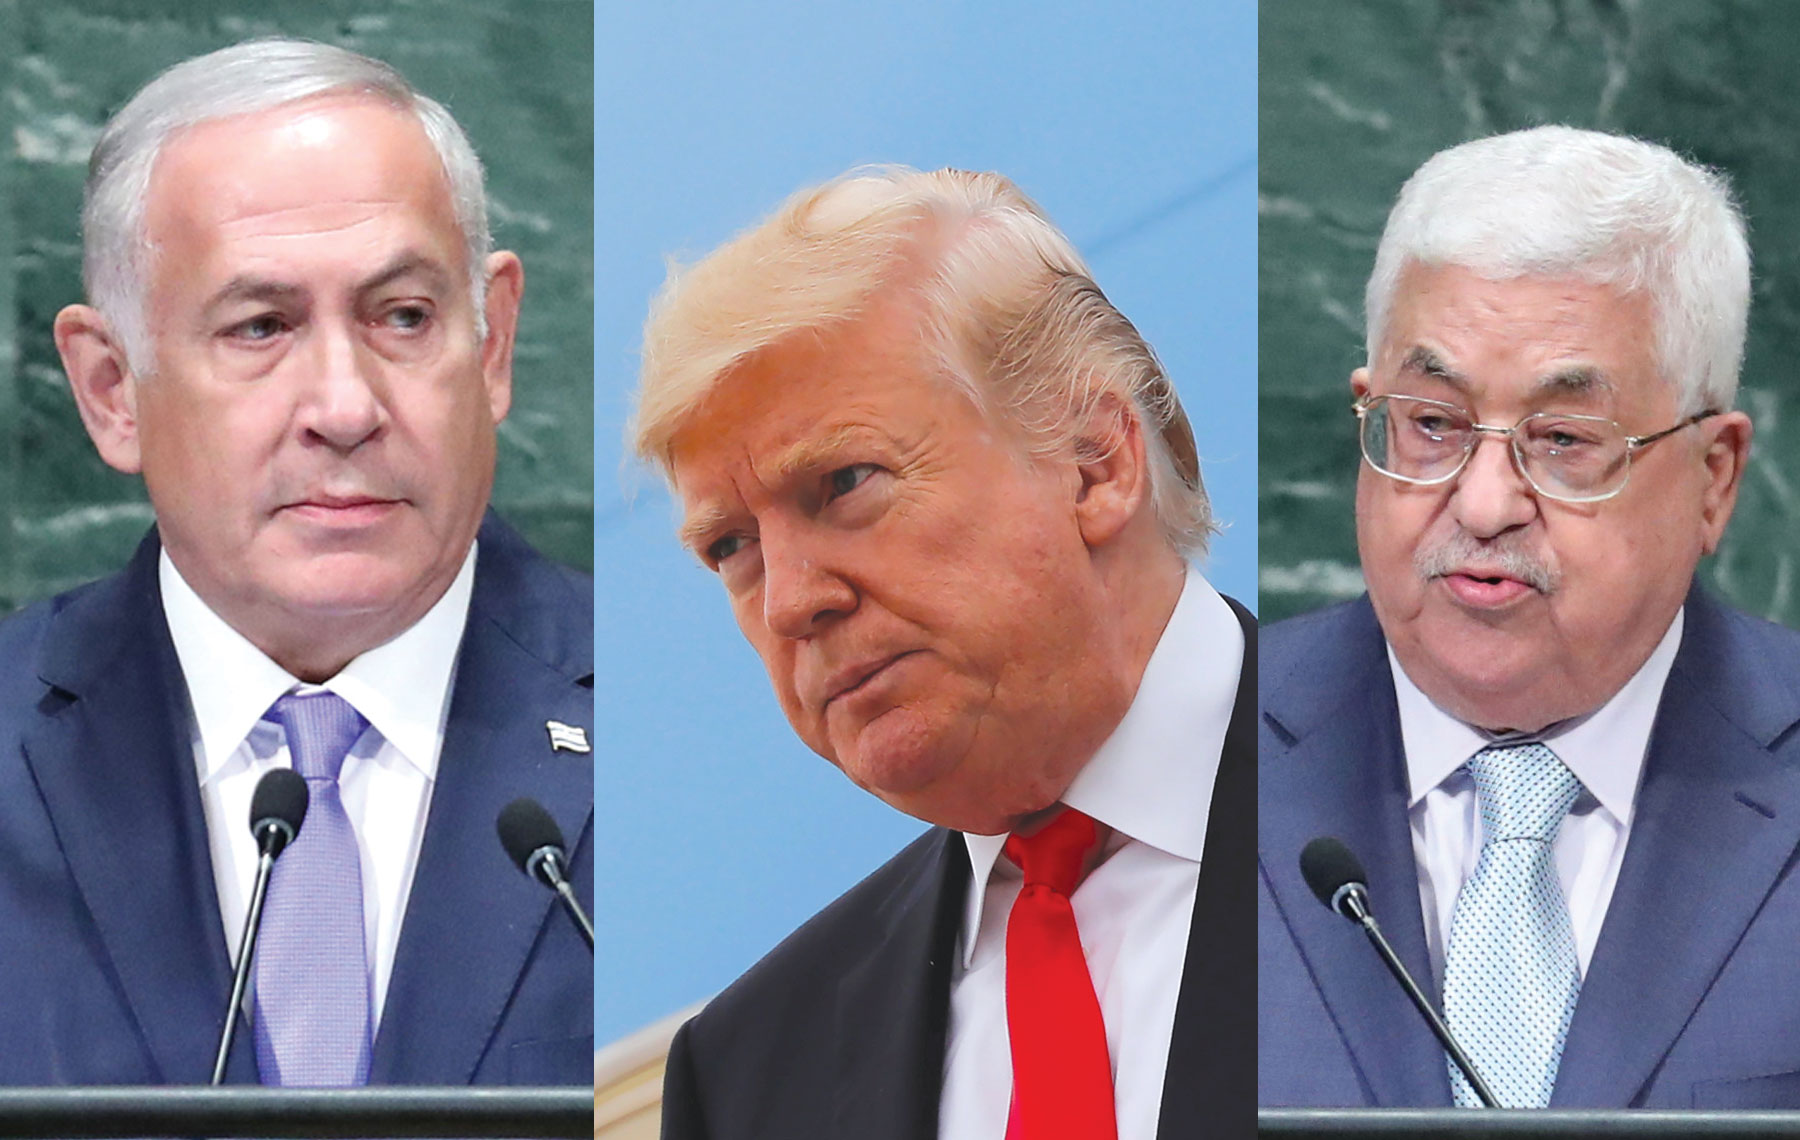 Palestine rejects Pompeo's request for bilateral talks